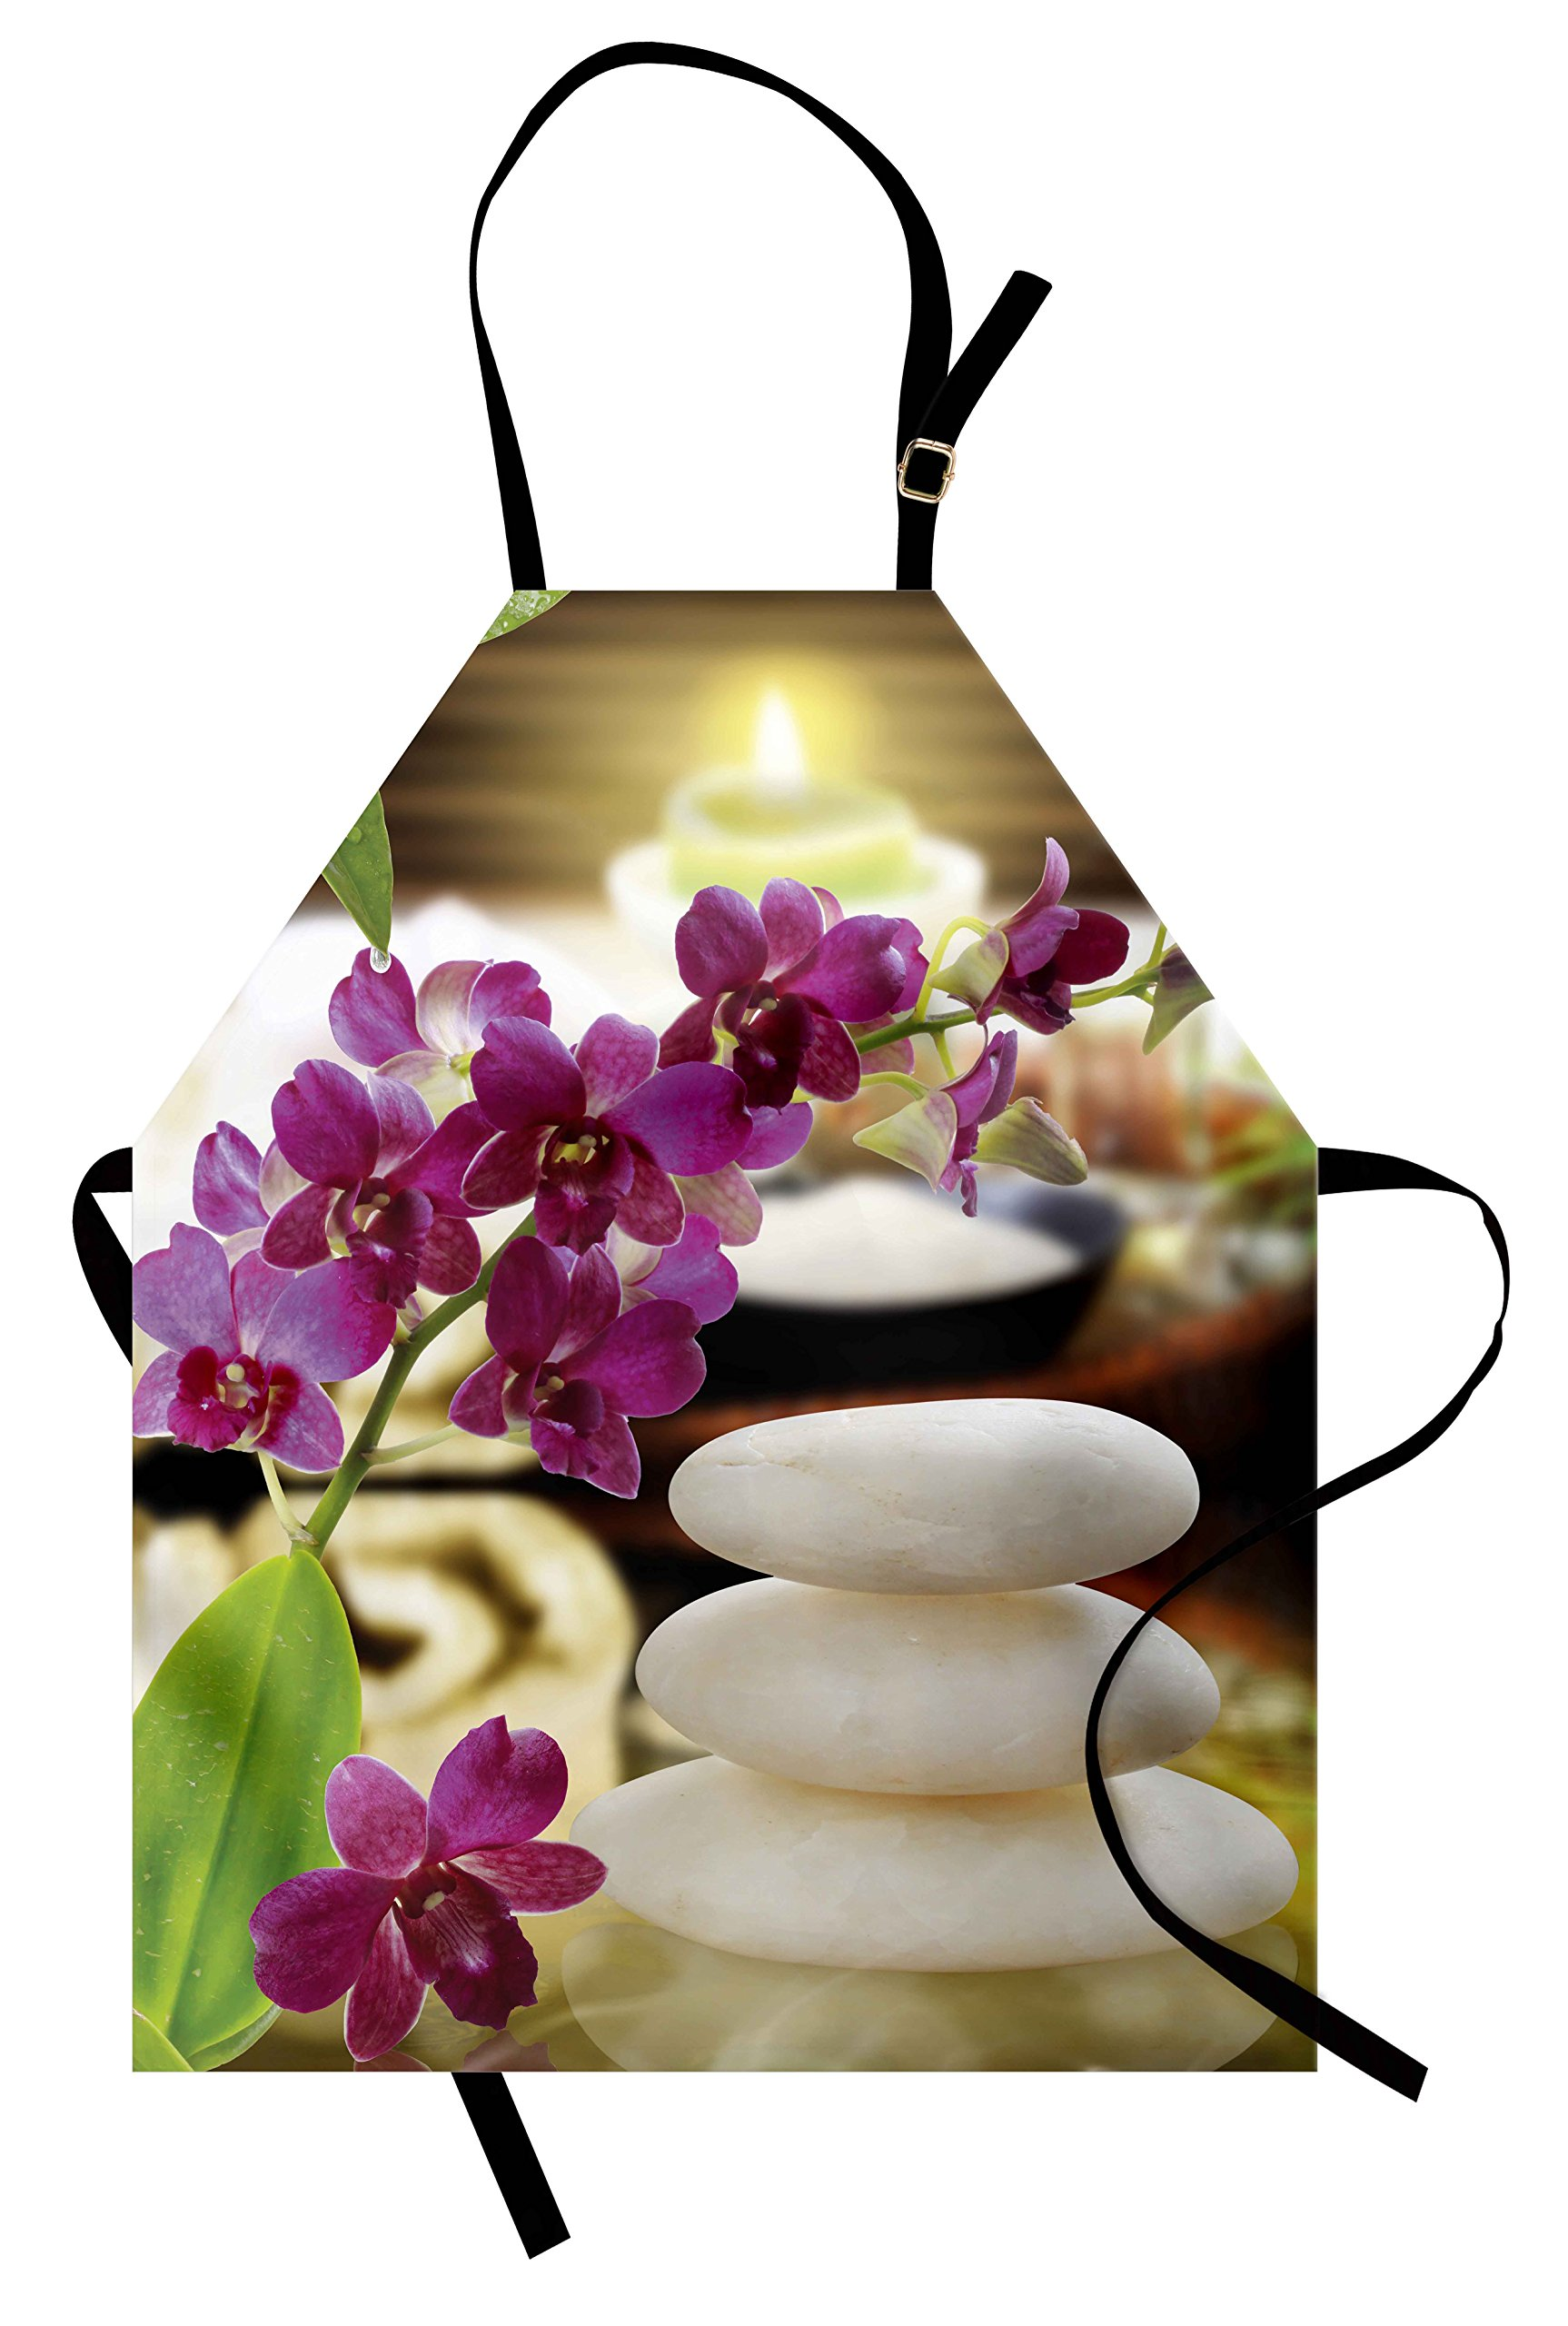 Lunarable Spa Apron, Refreshing Spa Day with Stones Herbal Salts and the Exotic Flowers Print, Unisex Kitchen Bib Apron with Adjustable Neck for Cooking Baking Gardening, Purple White and Green